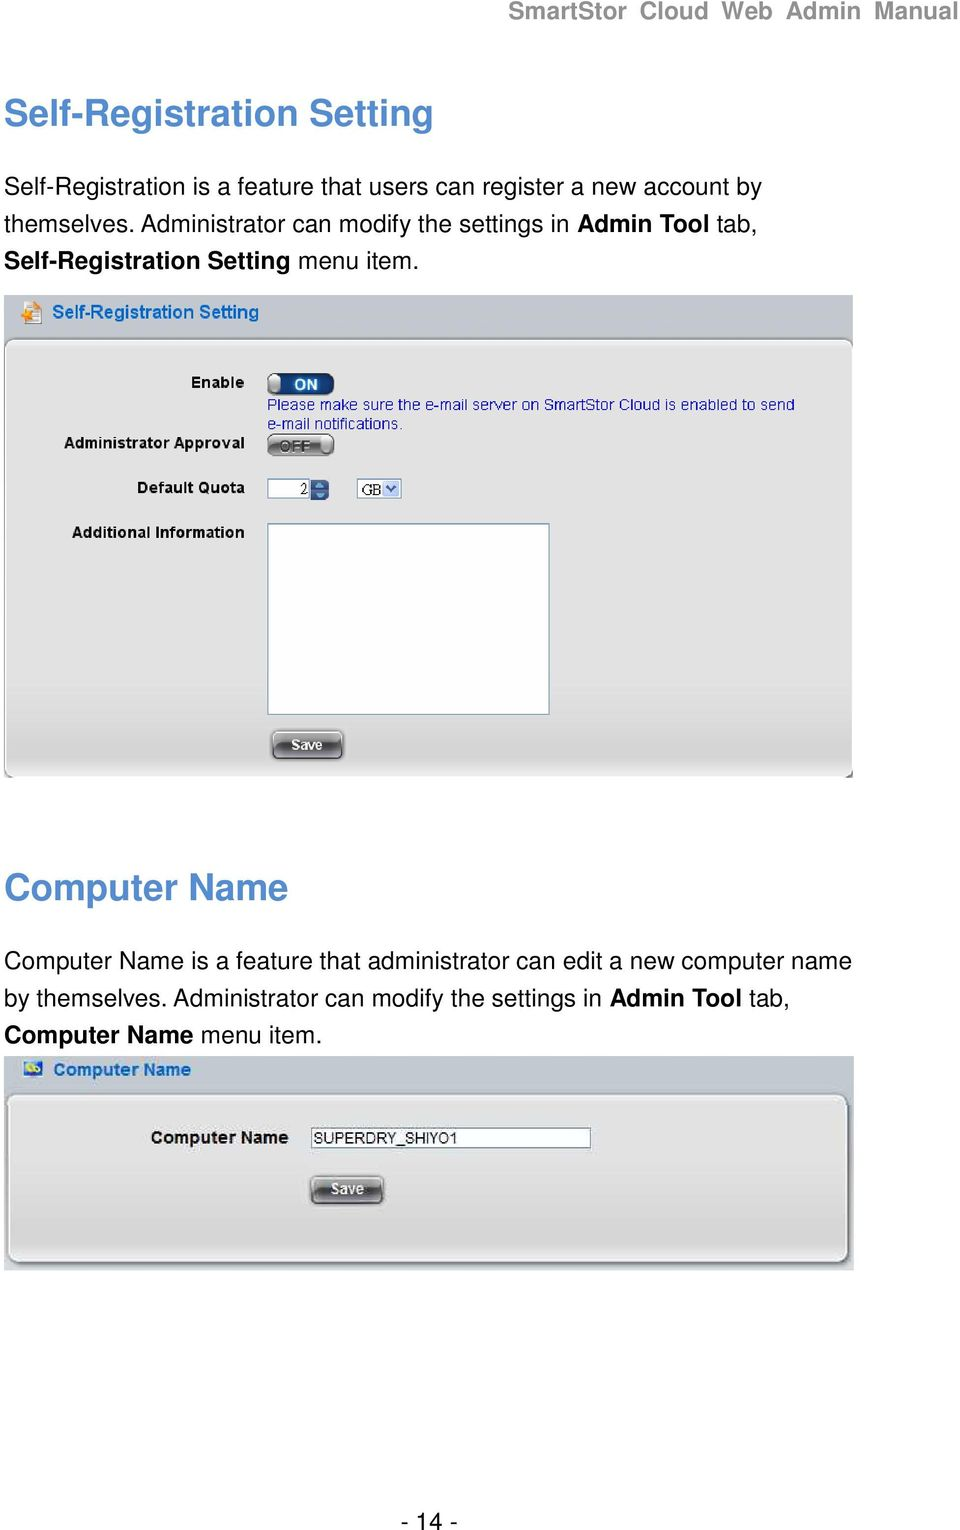 Administrator can modify the settings in Admin Tool tab, Self-Registration Setting menu item.